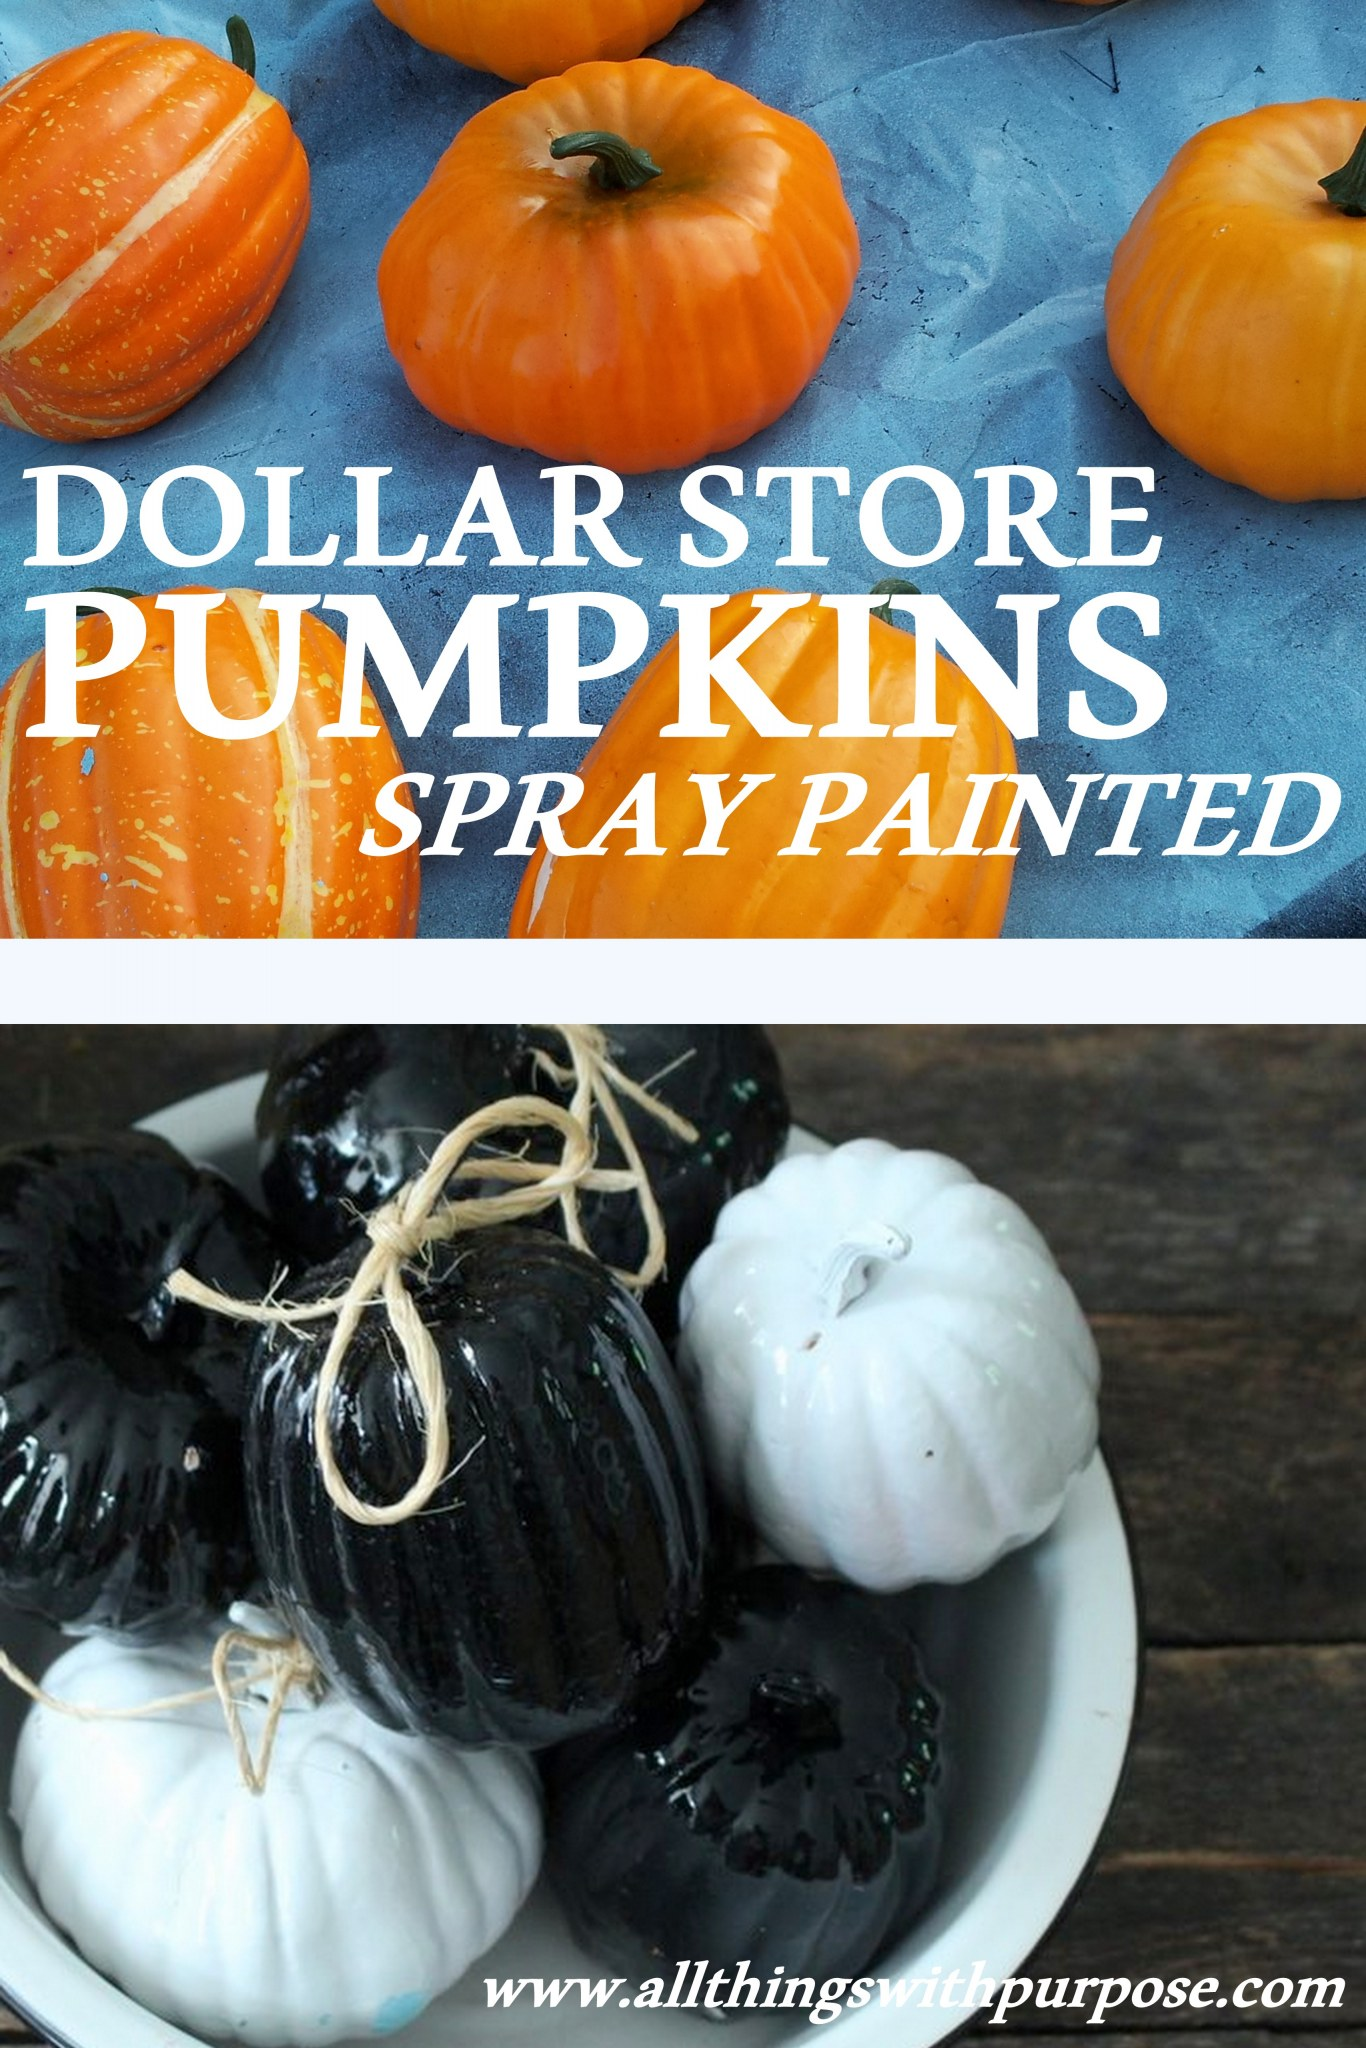 How to store pumpkins - W